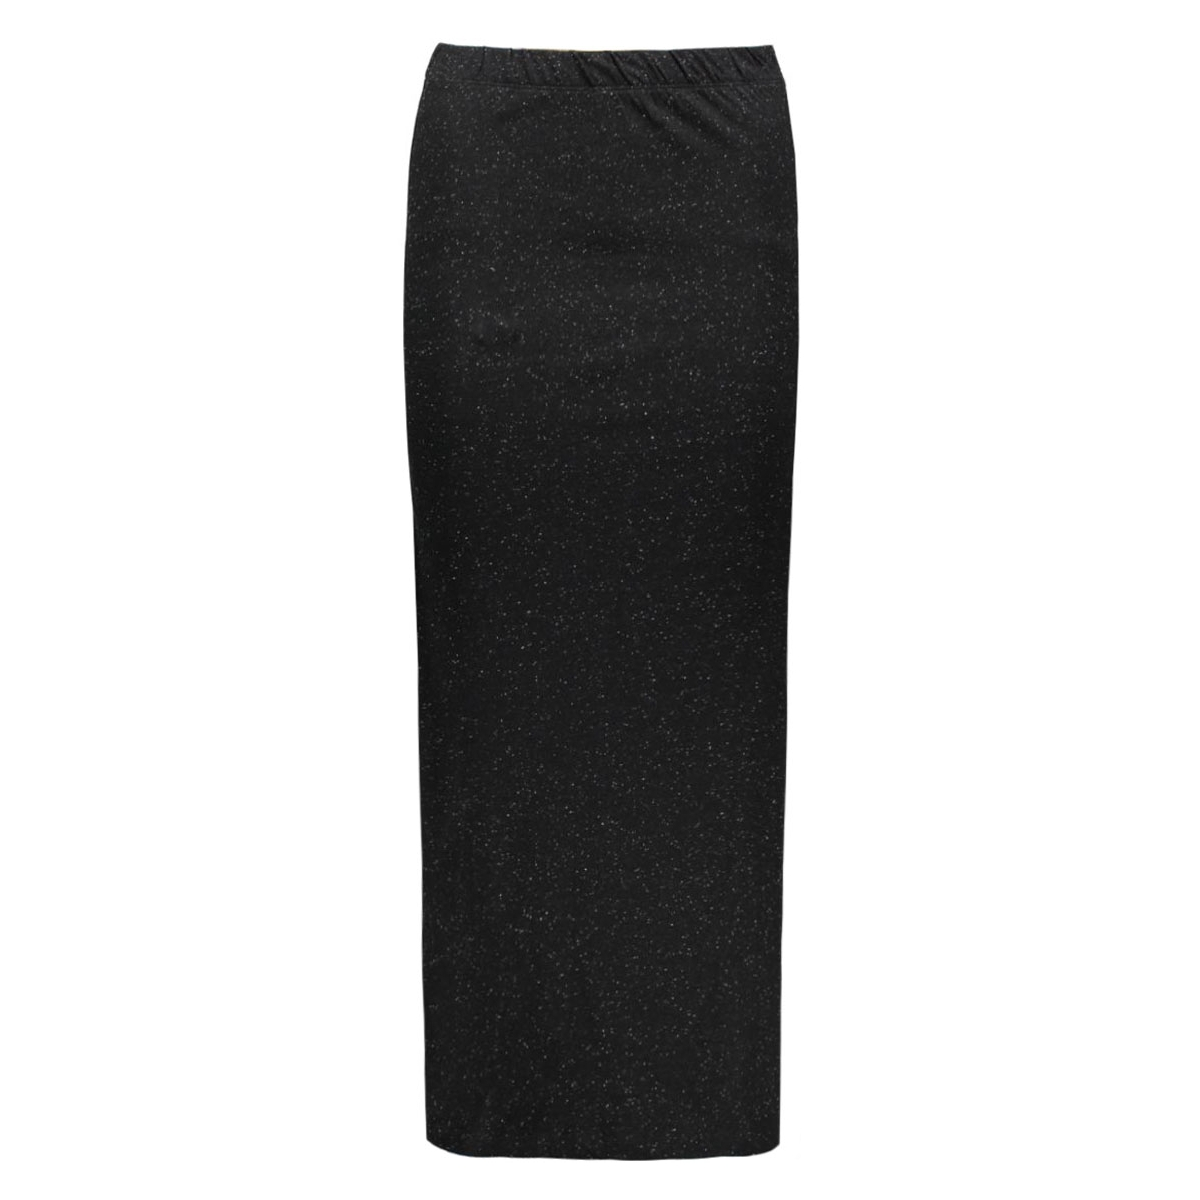 nmlax nw ankle skirt pf 10159874 noisy may rok black